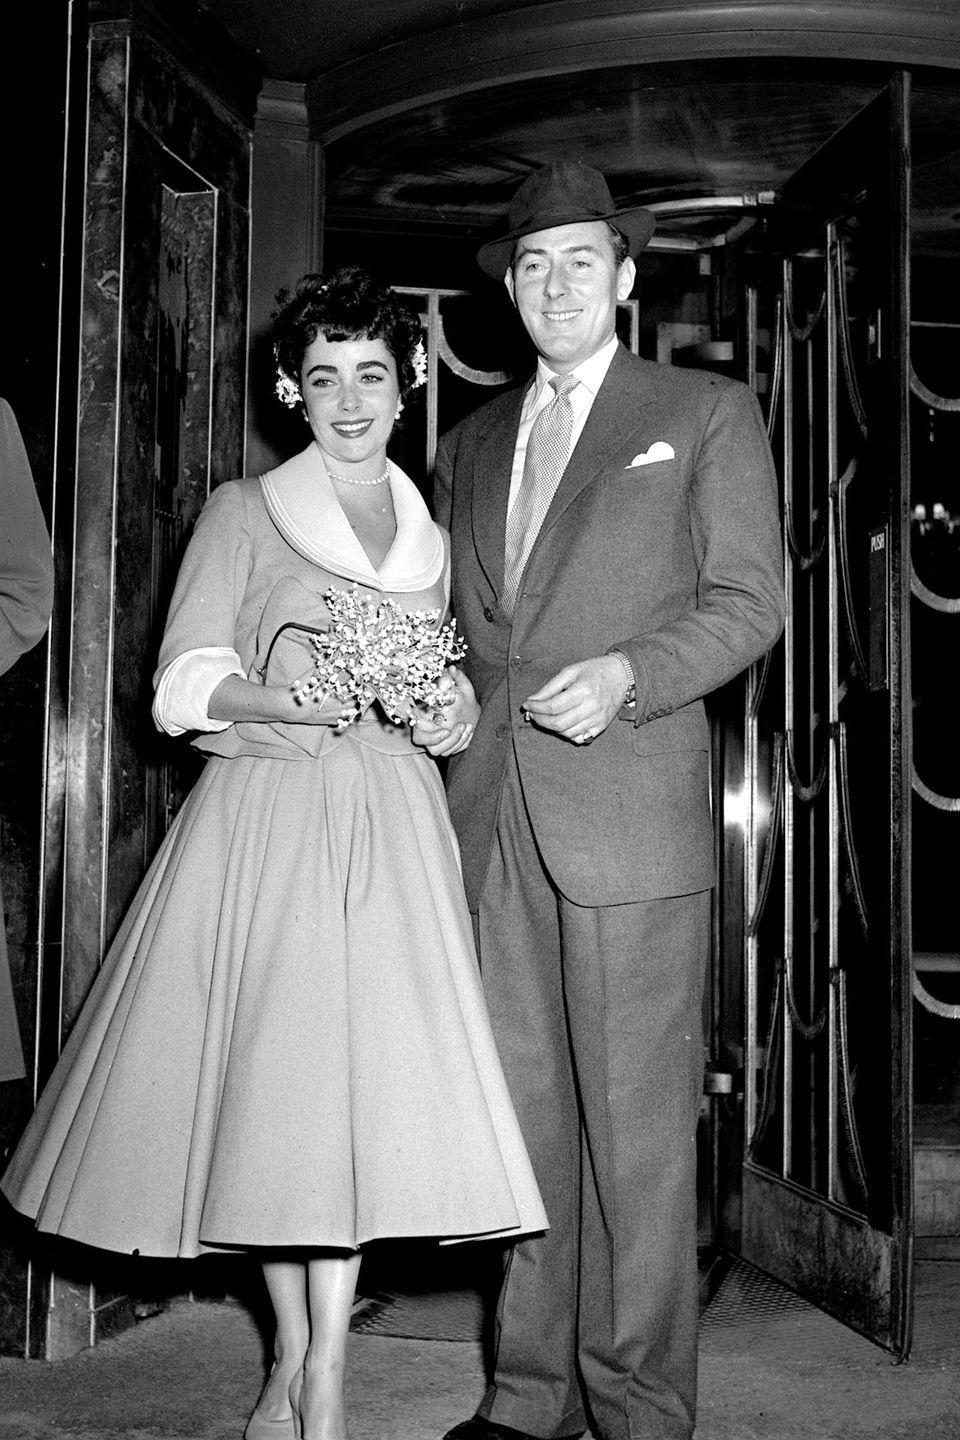 <p>Elizabeth Taylor's second marriage was to British stage actor Michael Wilding. The two were wed in a low-key ceremony in London and for the occasion Taylor chose a demure suit with a wide white collar. </p>